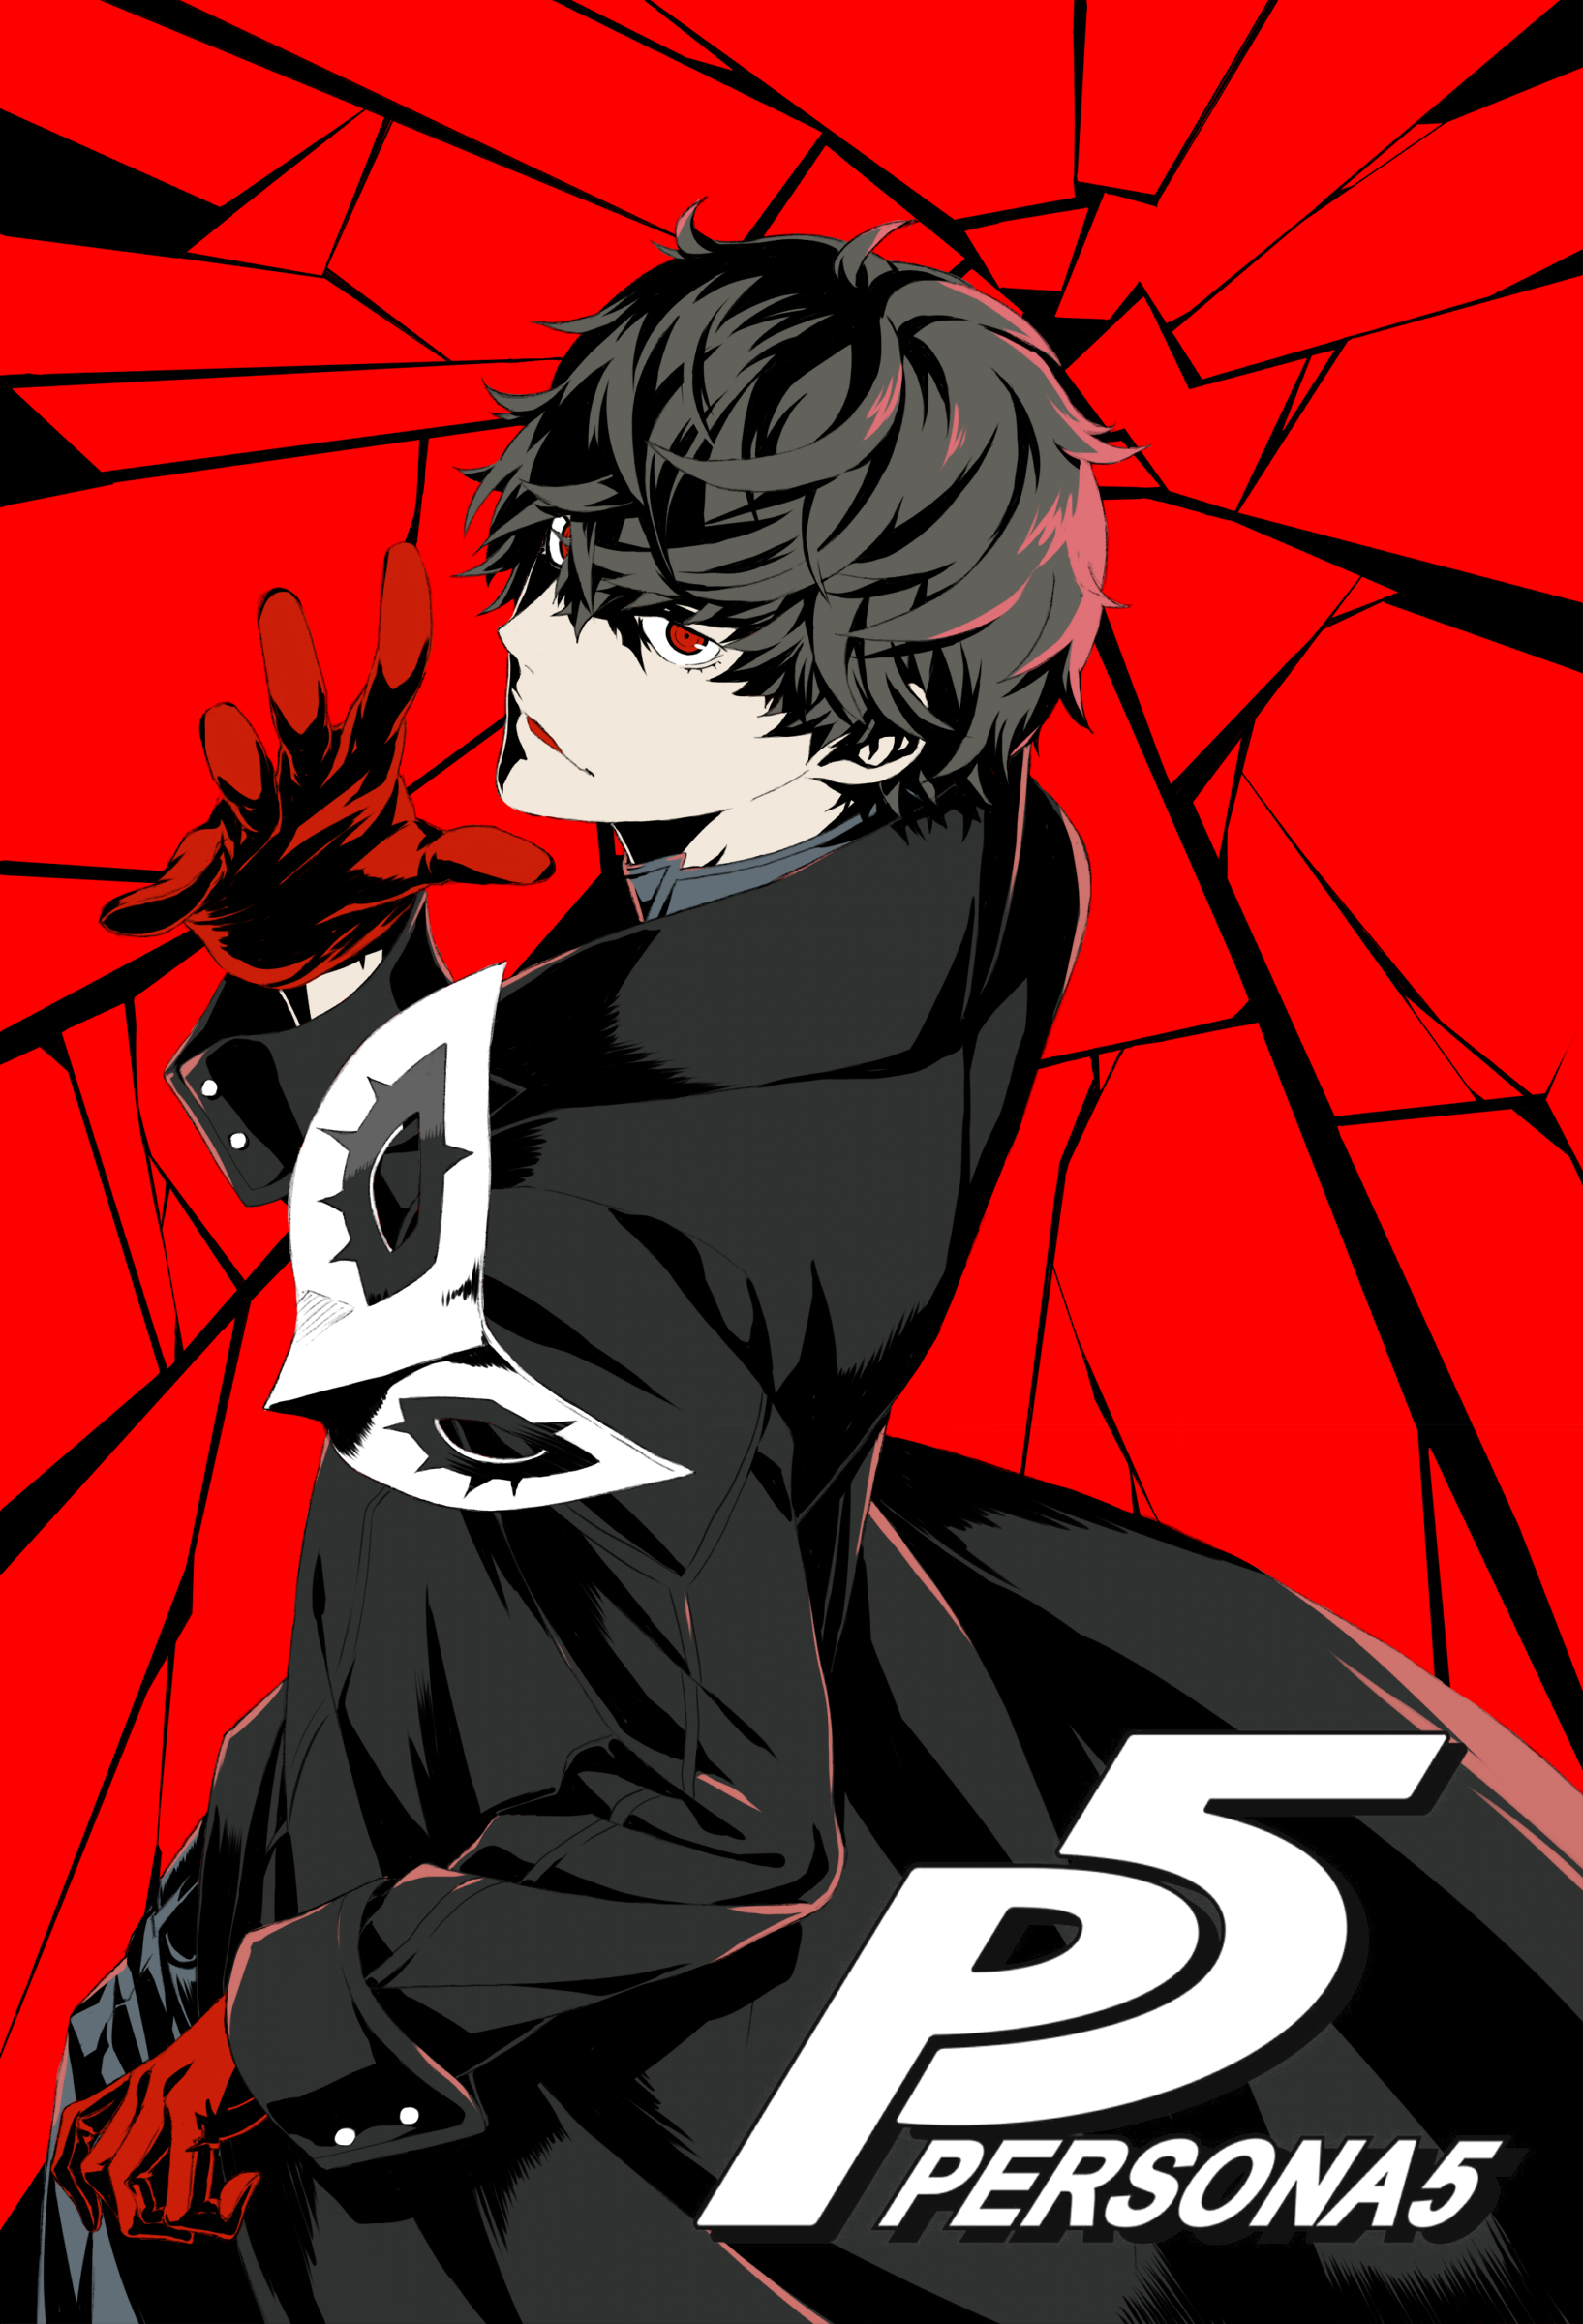 persona 5 wallpaper phone